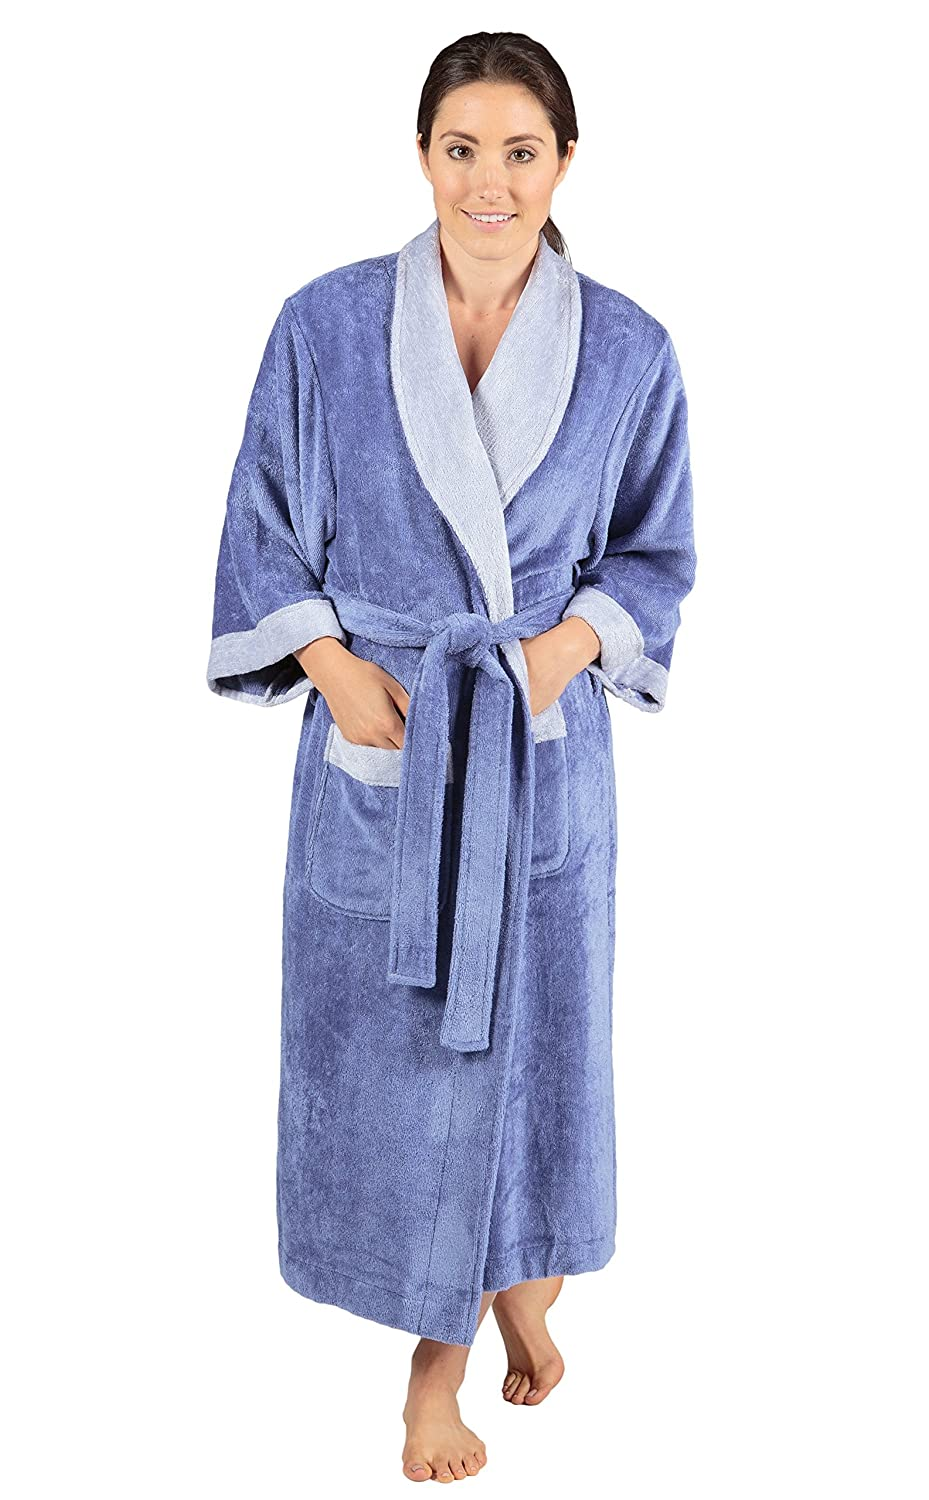 6c63ee6f204 Women s Terry Cloth Bath Robe - Luxury Comfy Robes by Texere (Sitkimono) at  Amazon Women s Clothing store